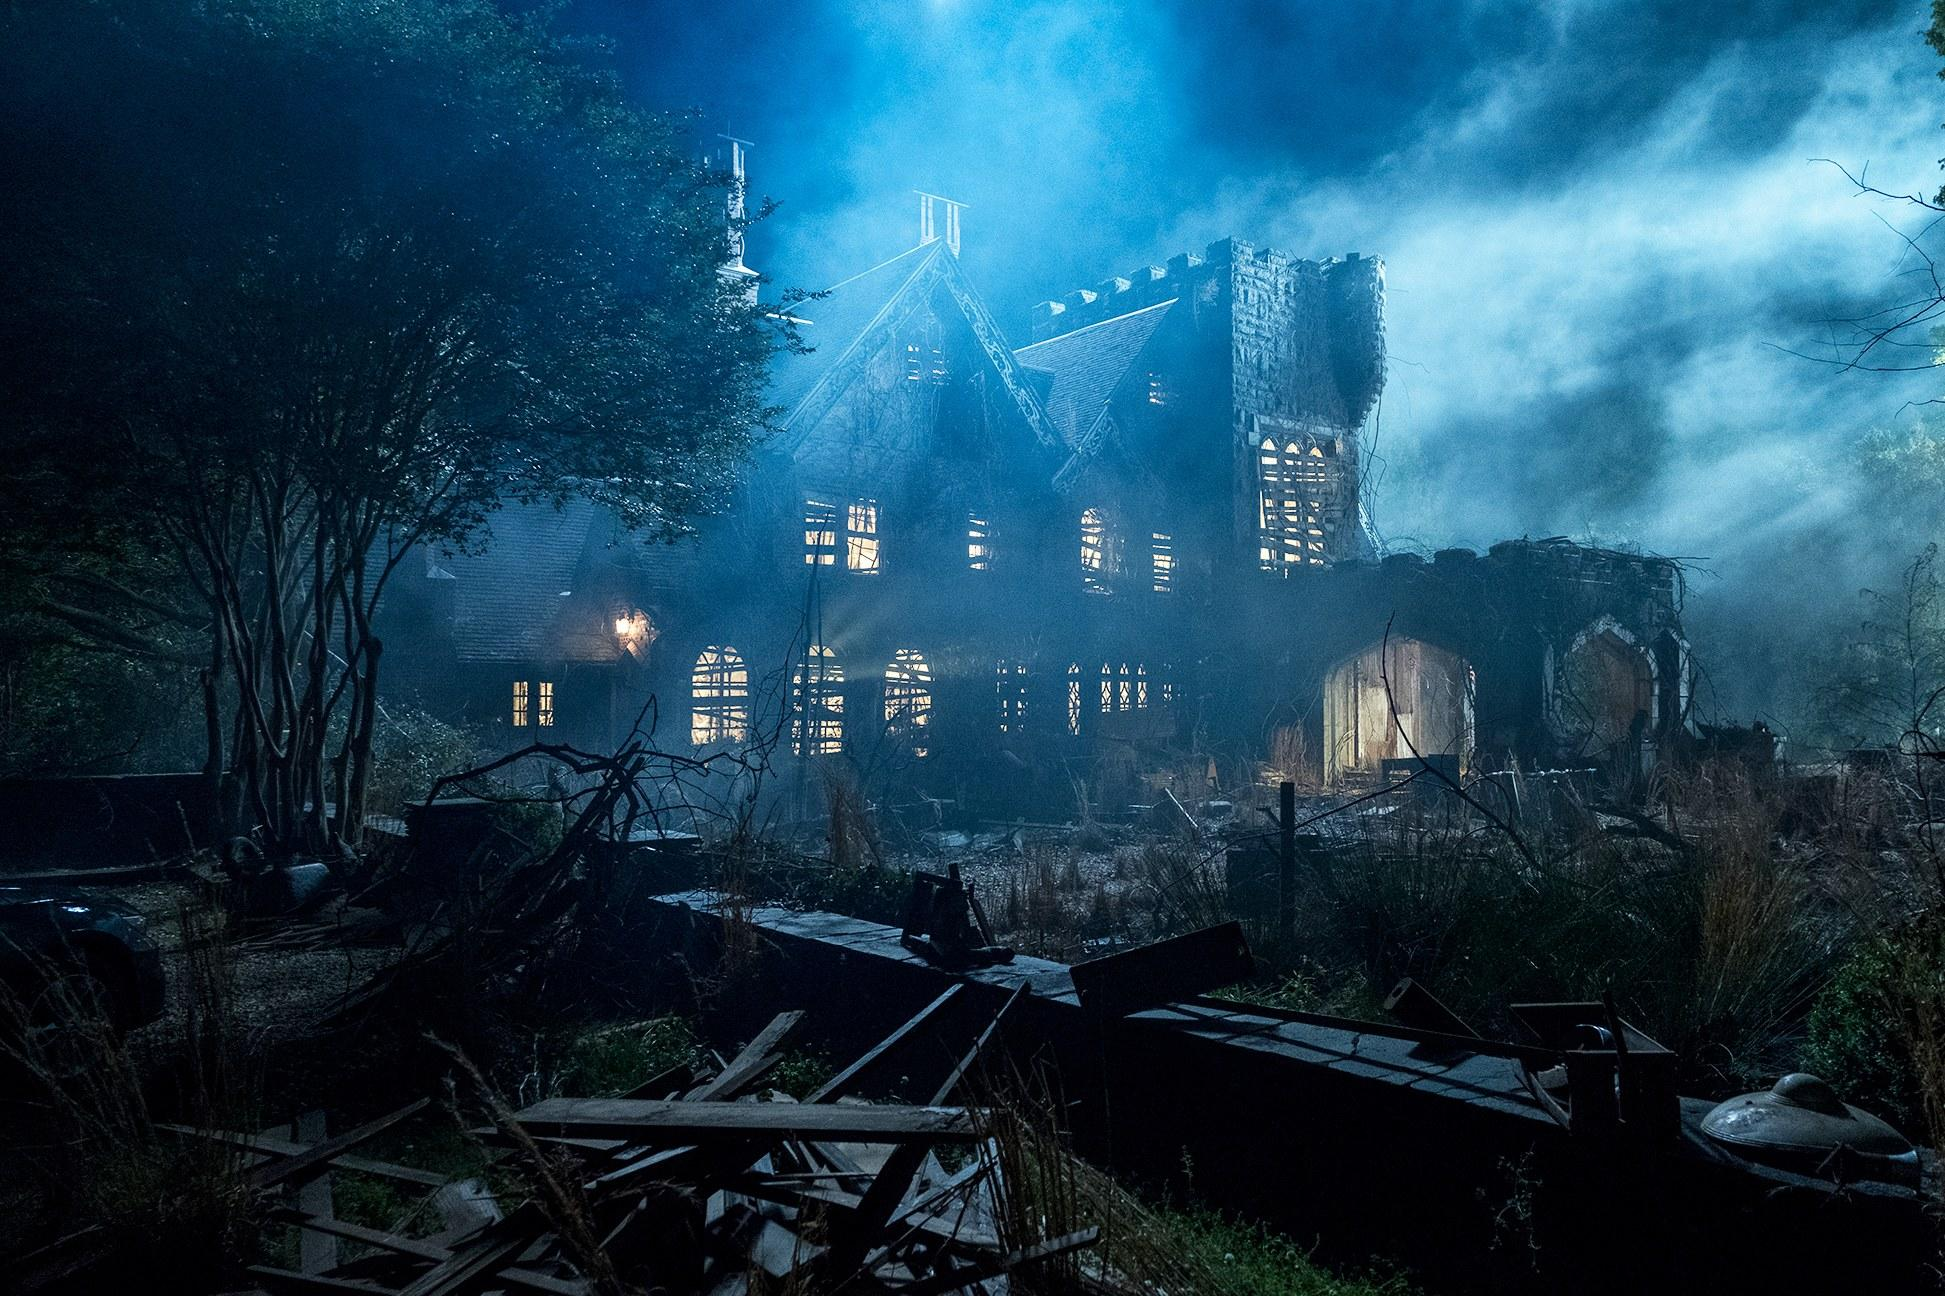 'The Haunting of Hill House' is the horror show you've been waiting for